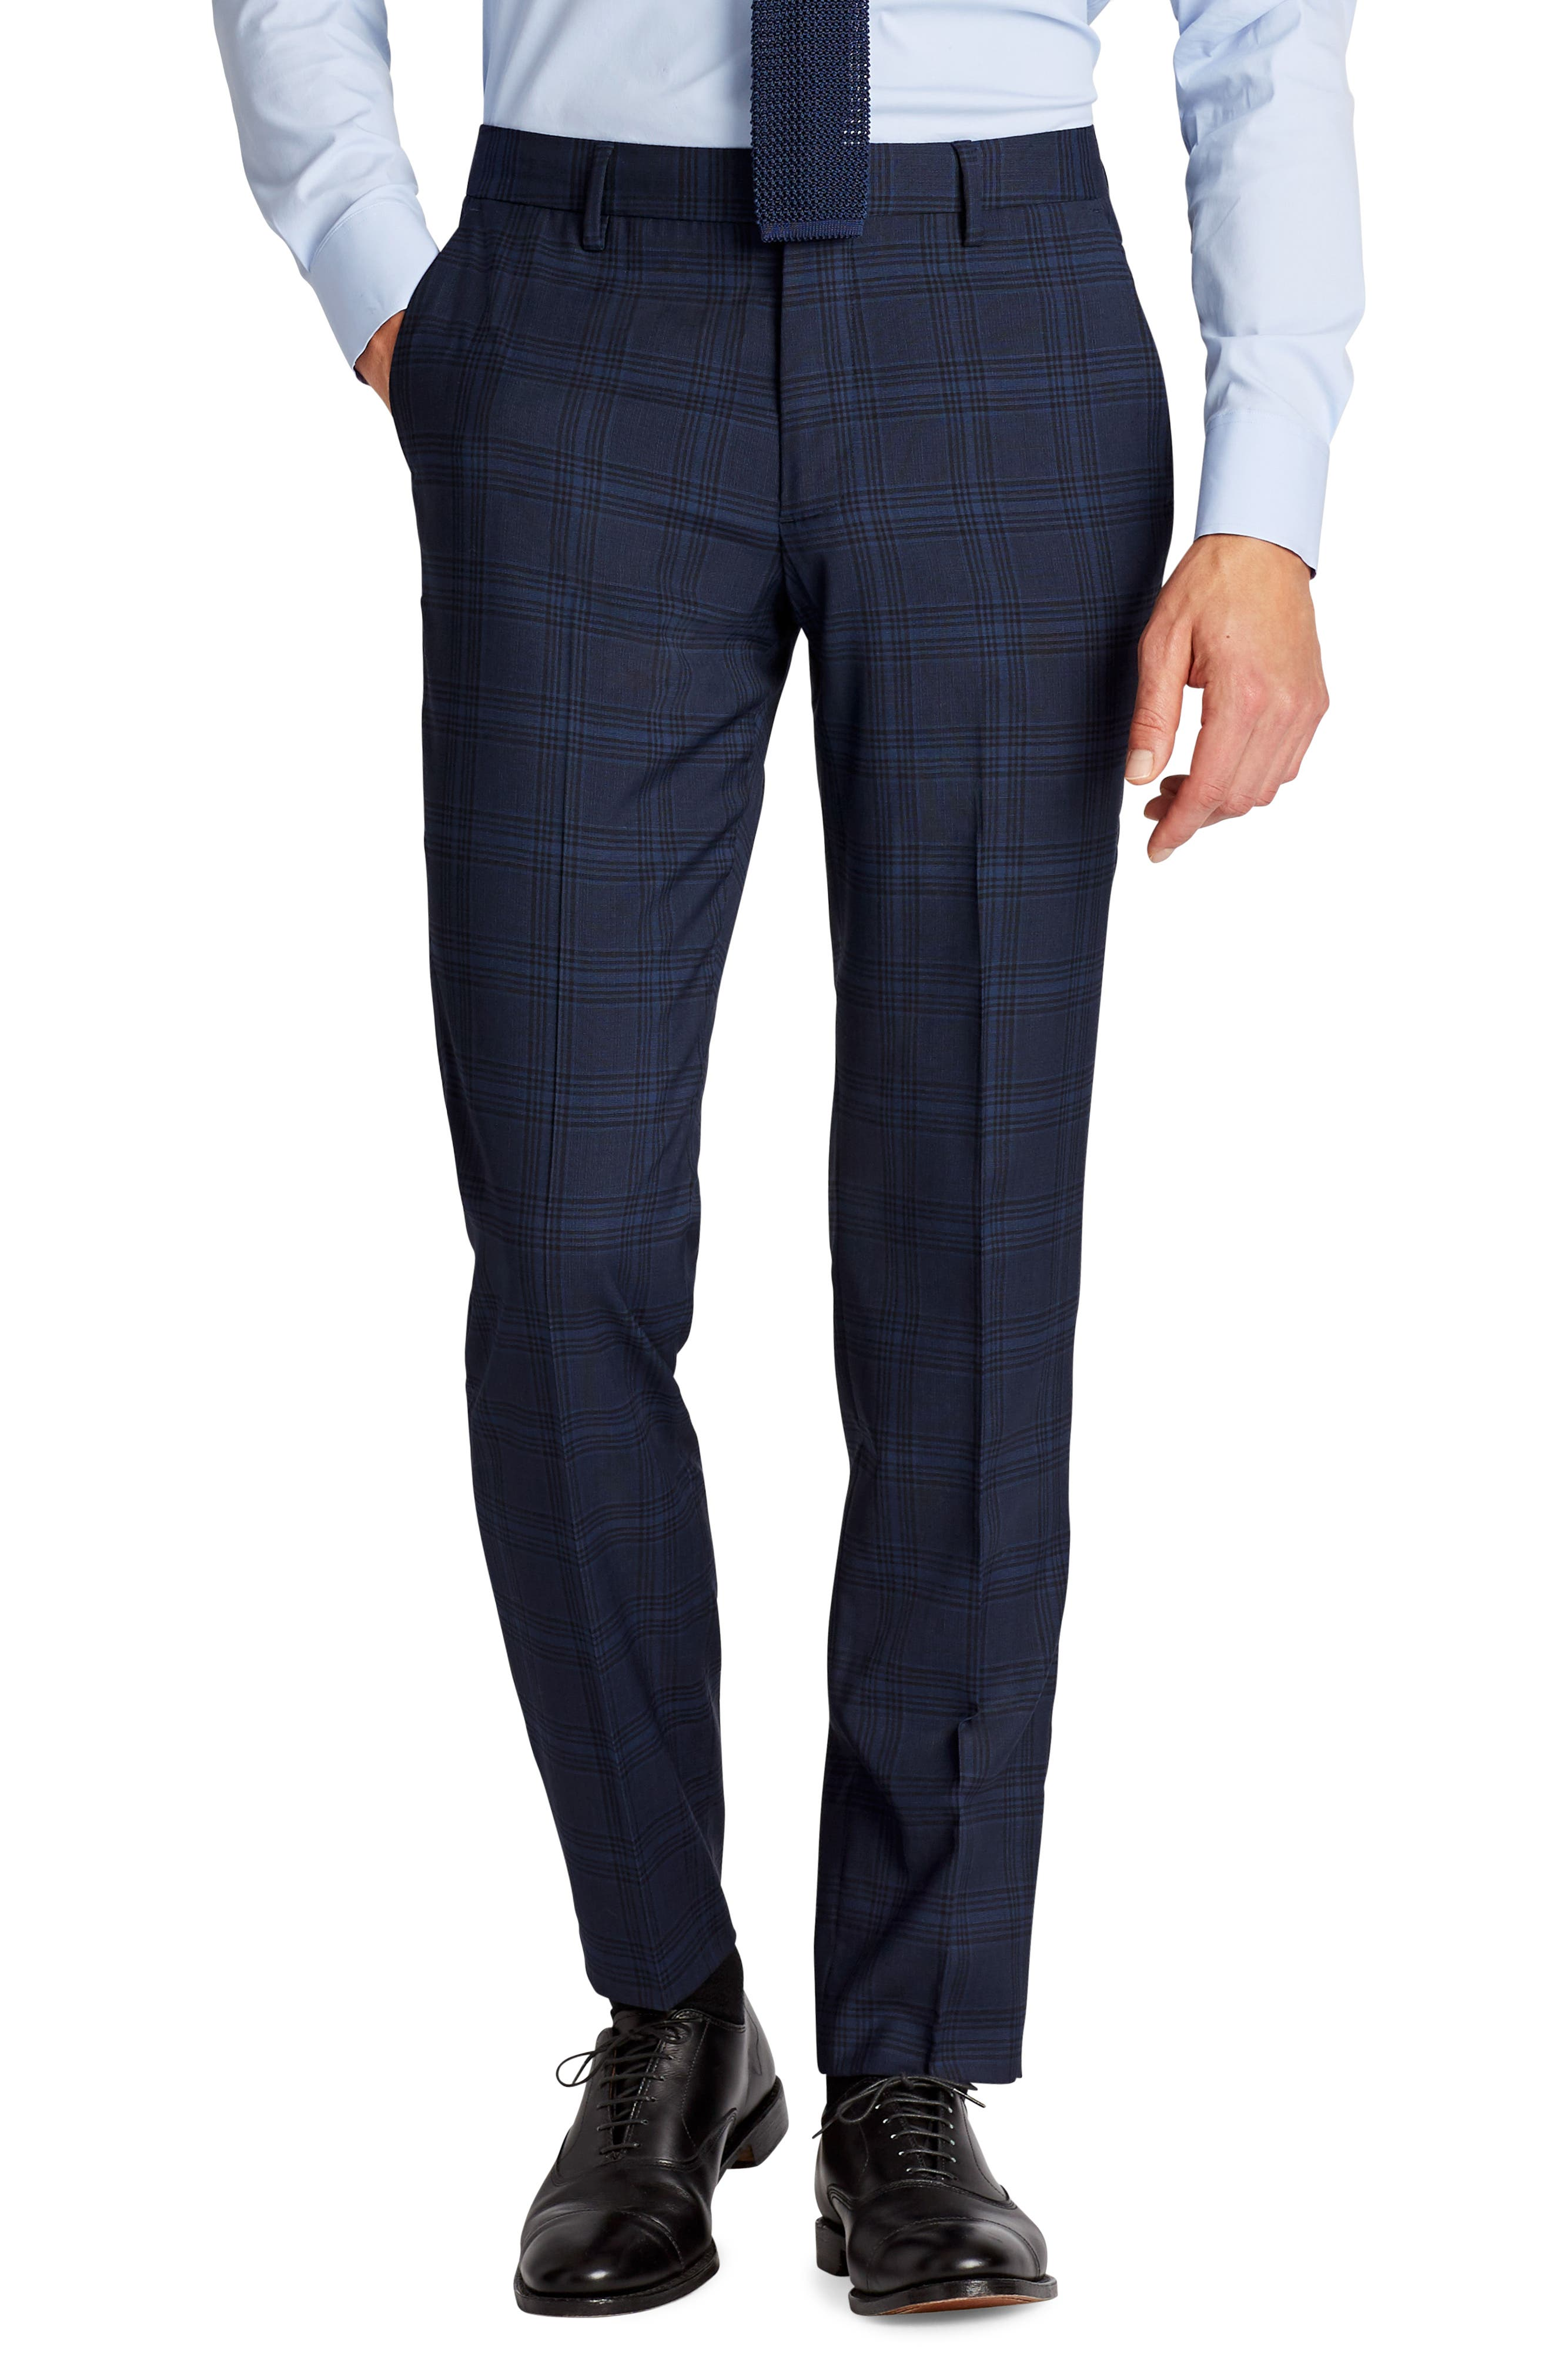 Jetsetter Flat Front Stretch Plaid Wool Blend Trousers,                             Main thumbnail 1, color,                             Navy Plaid